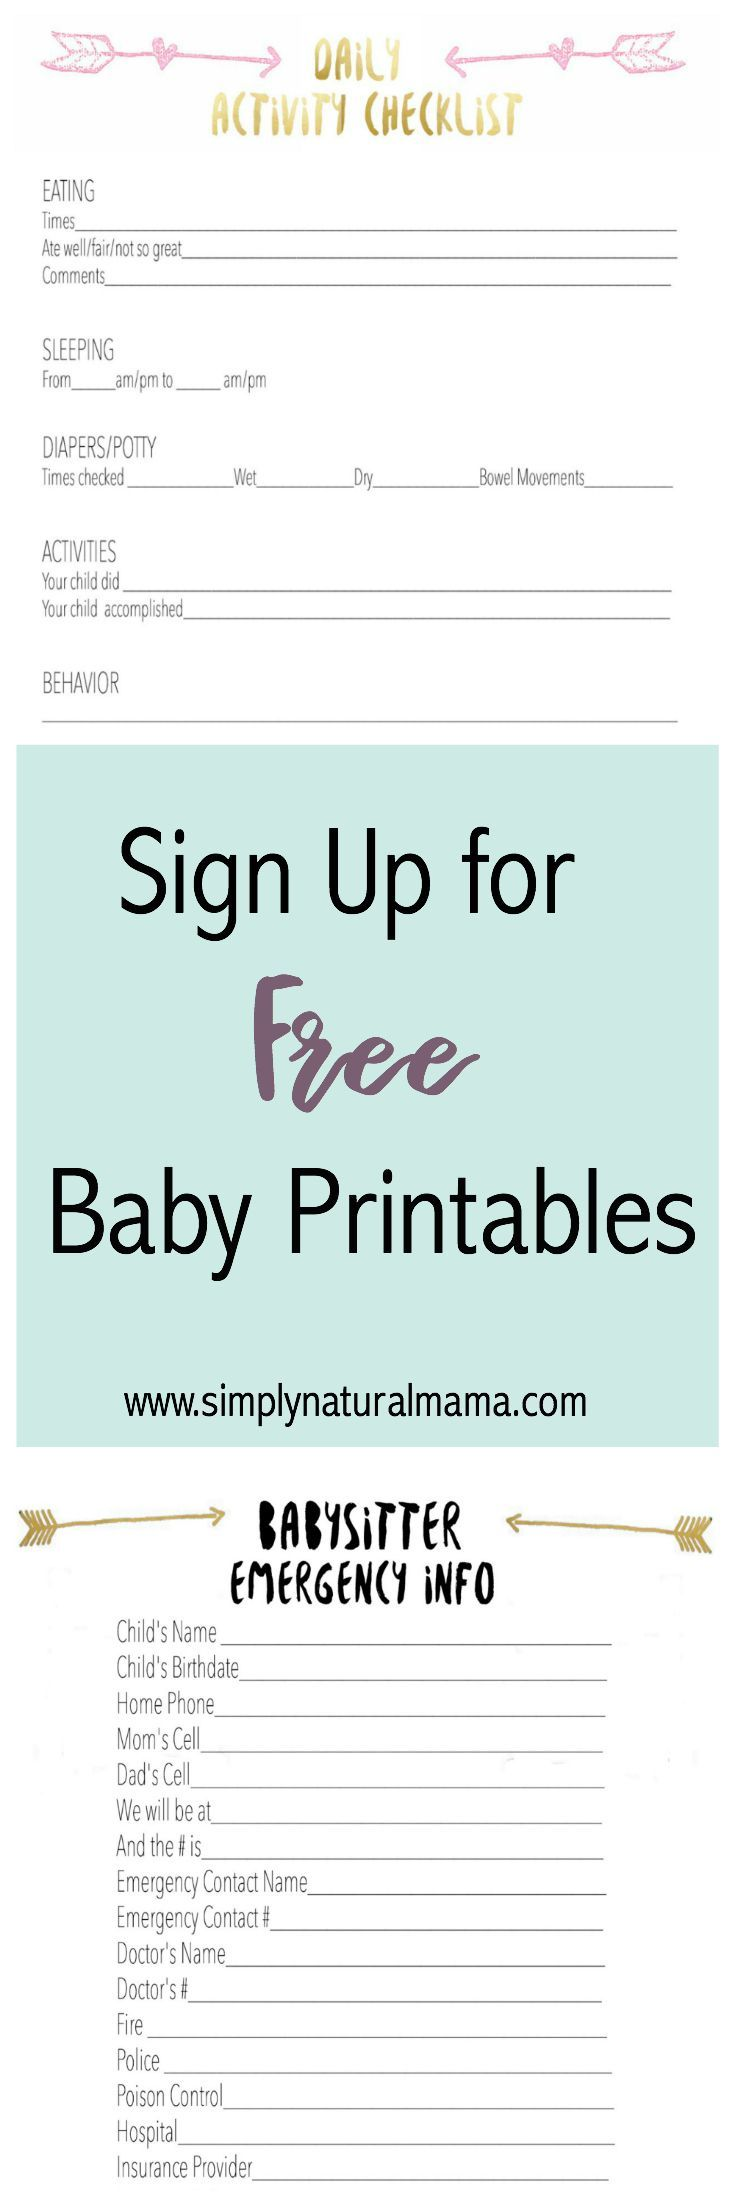 best ideas about babysitter checklist to sign up for two printables a daily activity checklist and a babysitter contact list